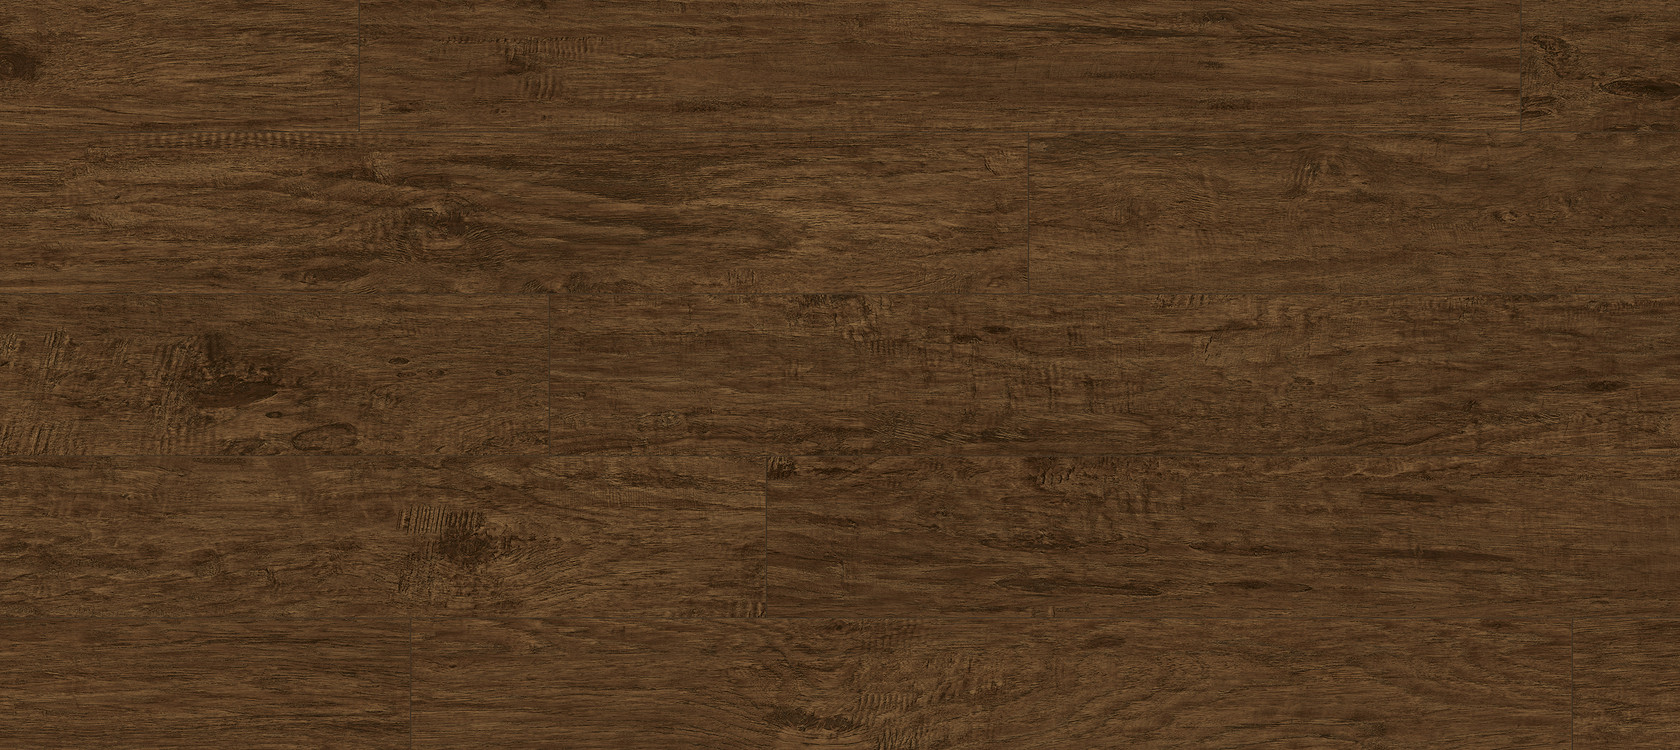 Ламинат Kaindl Classic Touch Standard Plank Hickory TRAIL